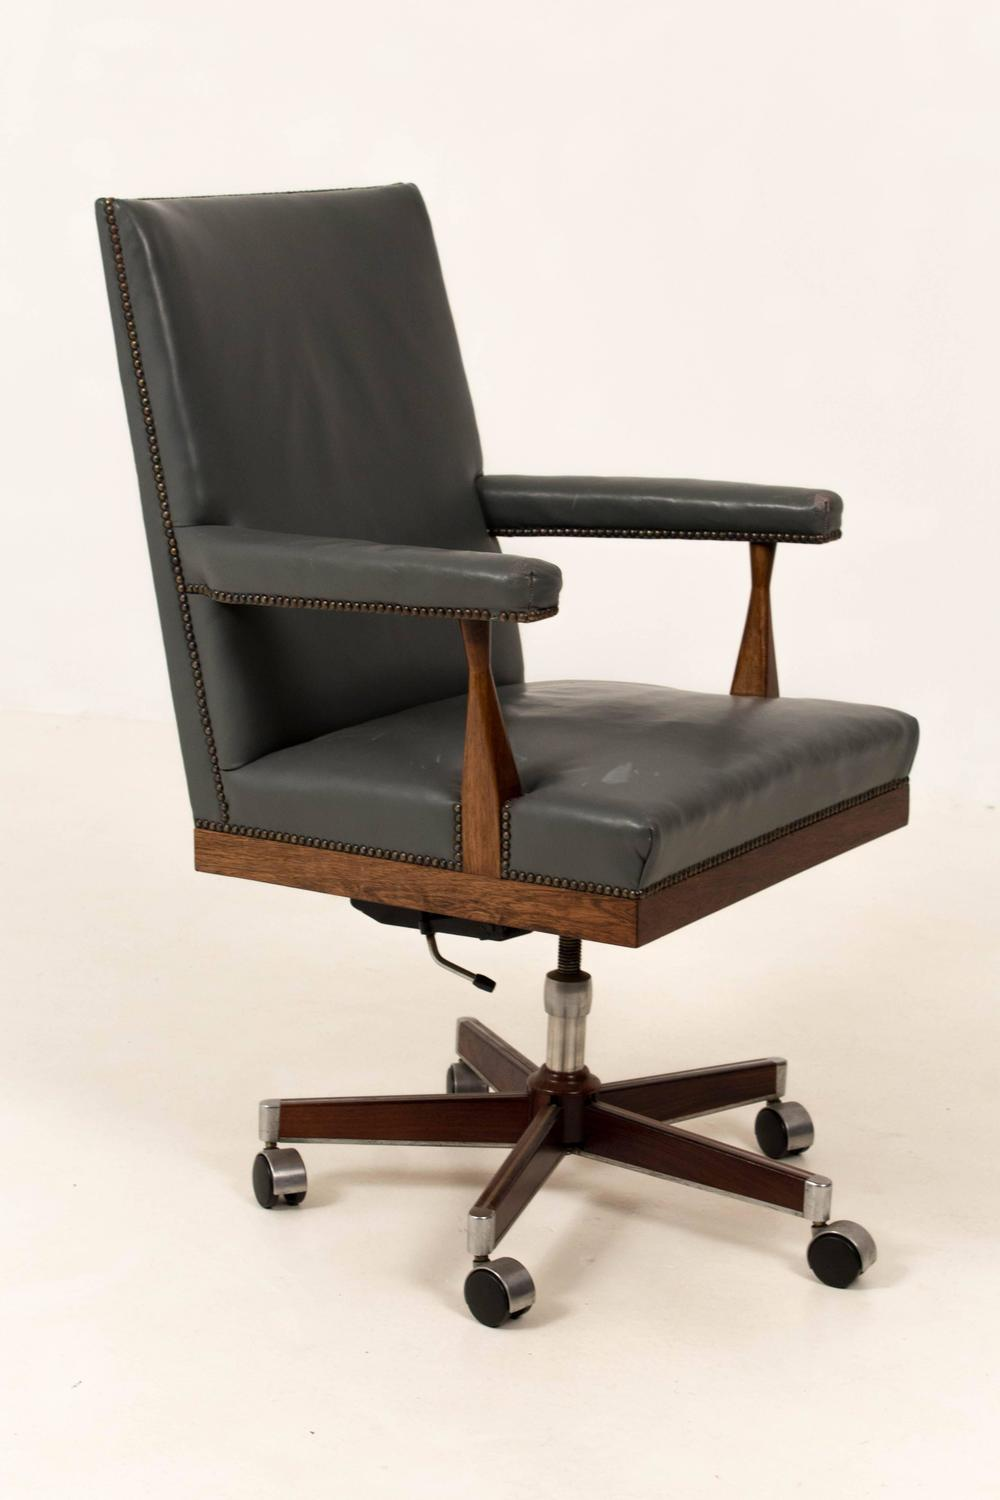 magnificent mid century modern office chair by theo